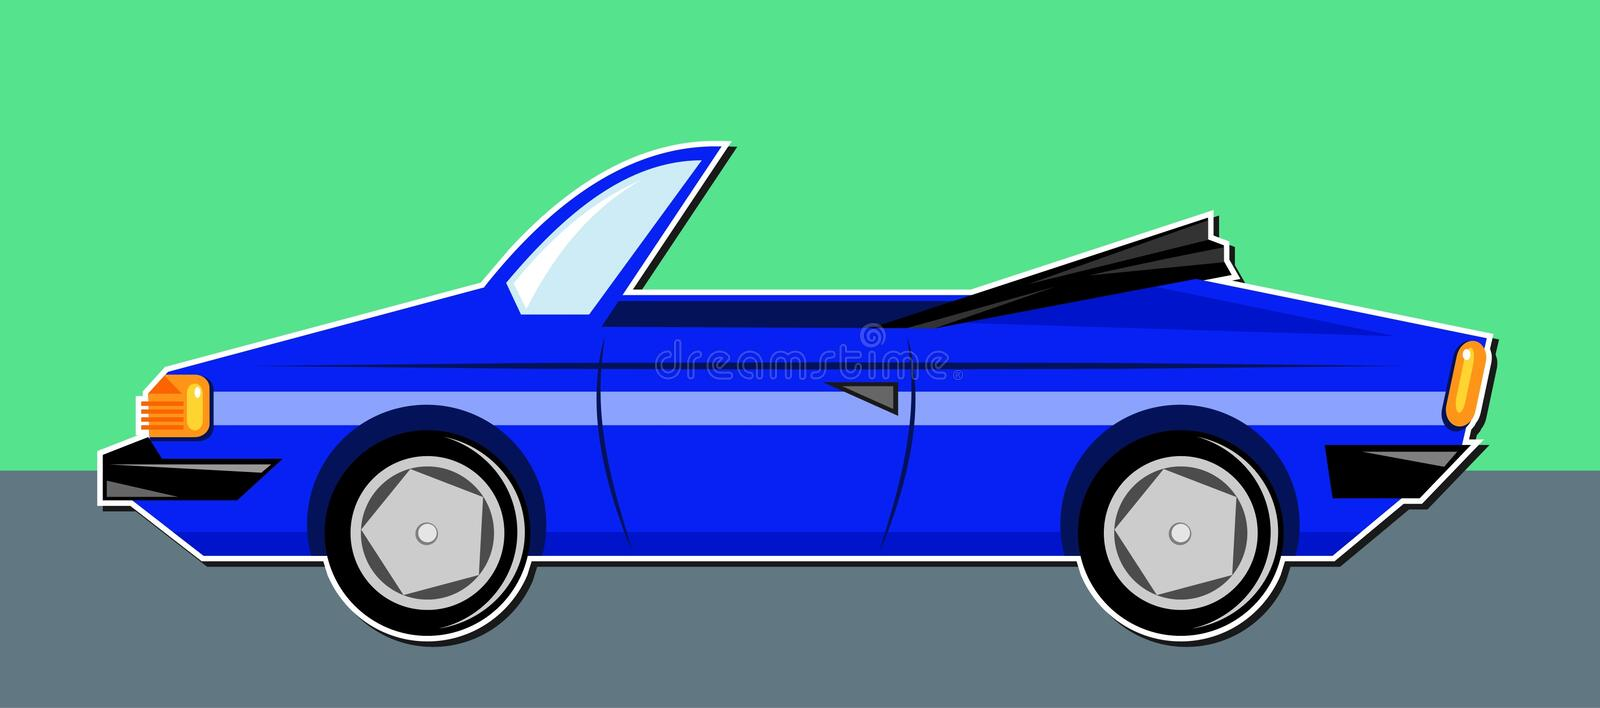 Sportwagen stock illustratie